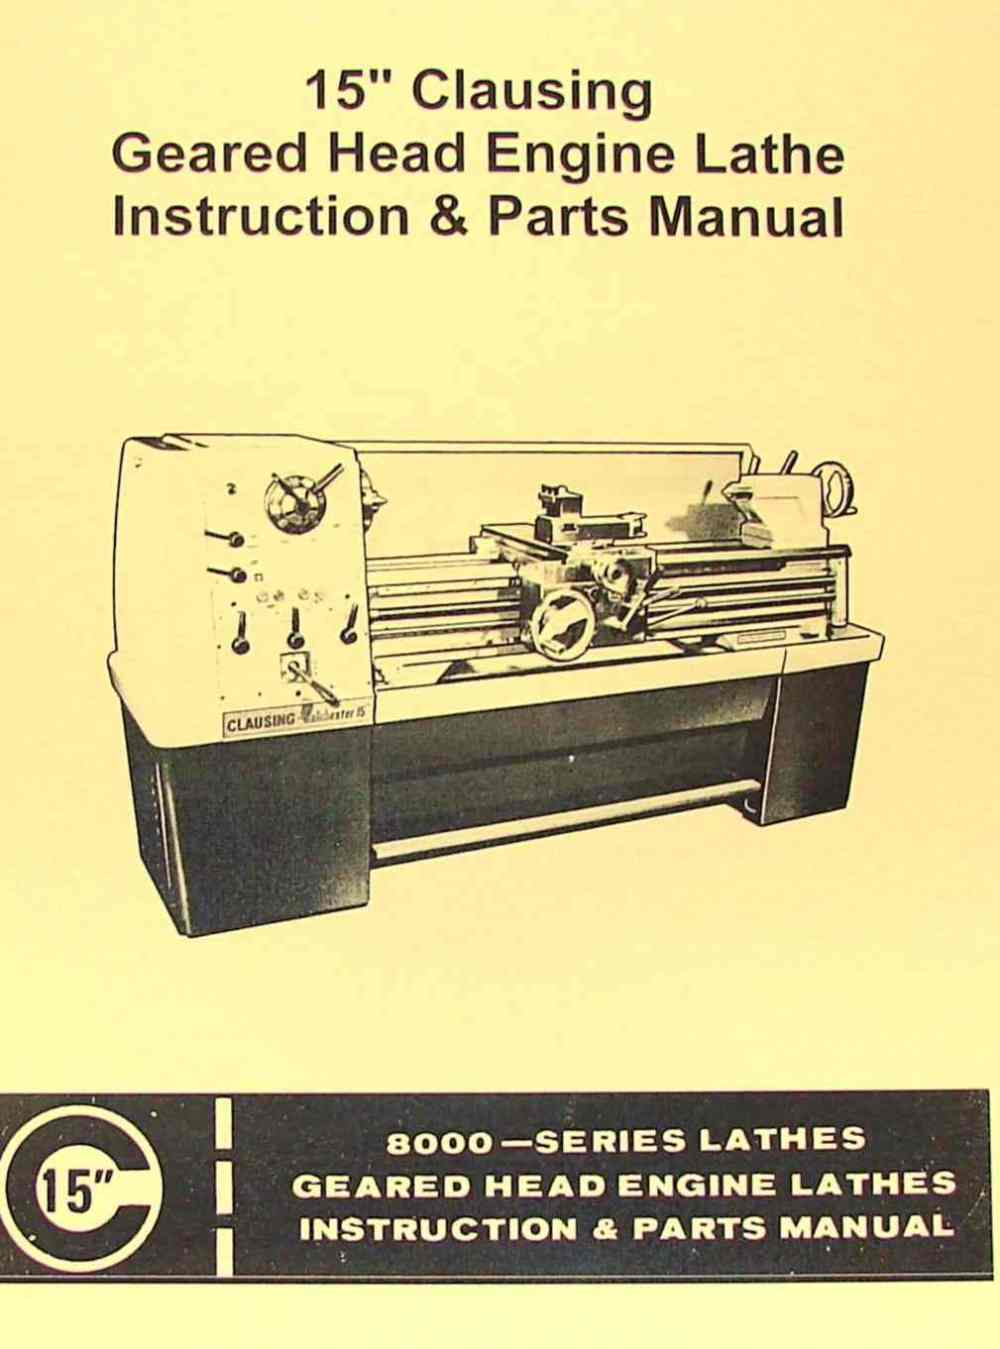 medium resolution of clausing colchester 15 8000 series metal lathe operating parts manual ozark tool manuals books